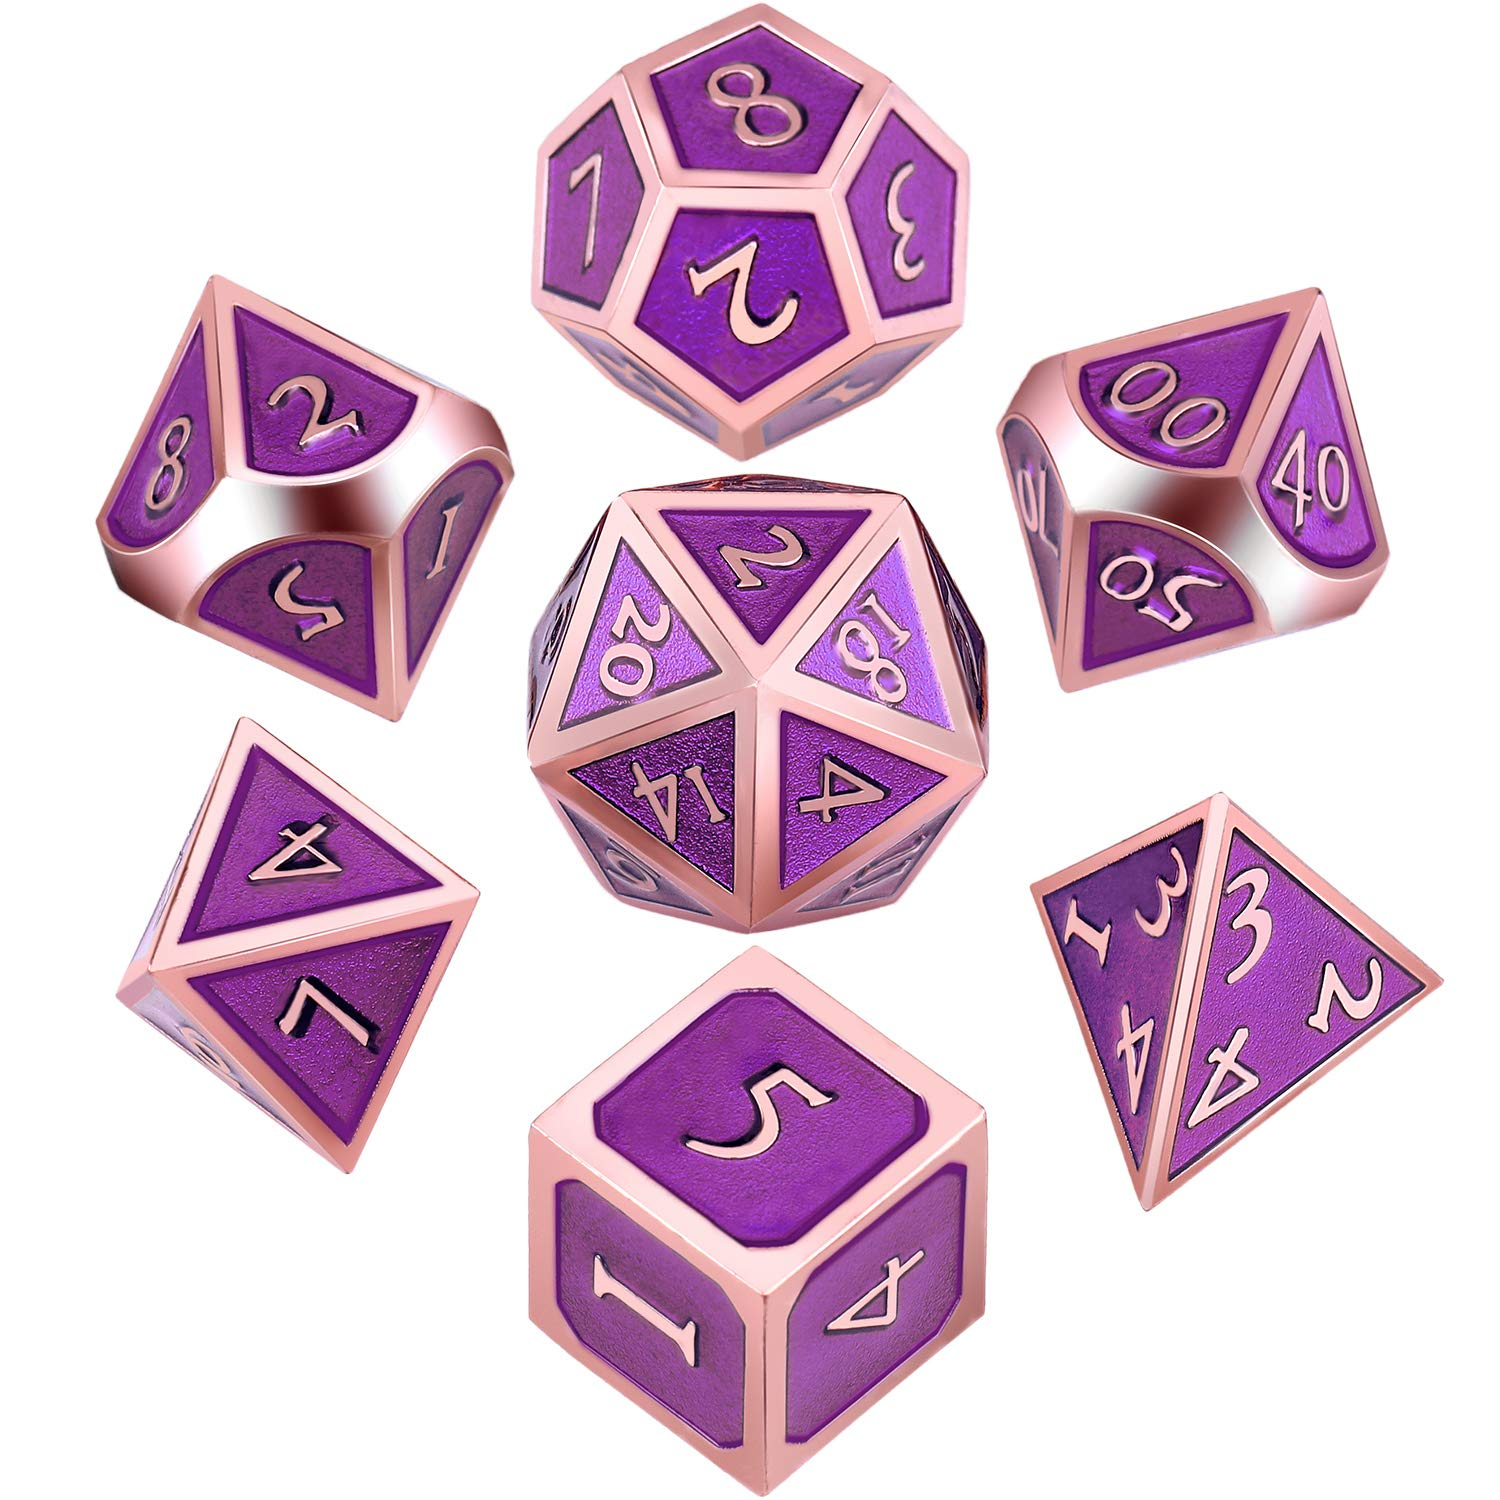 Bronzo Hestya 7 Pieces Metal Dices Set with Storage Bag And Enamel for Dungeons And Dragons